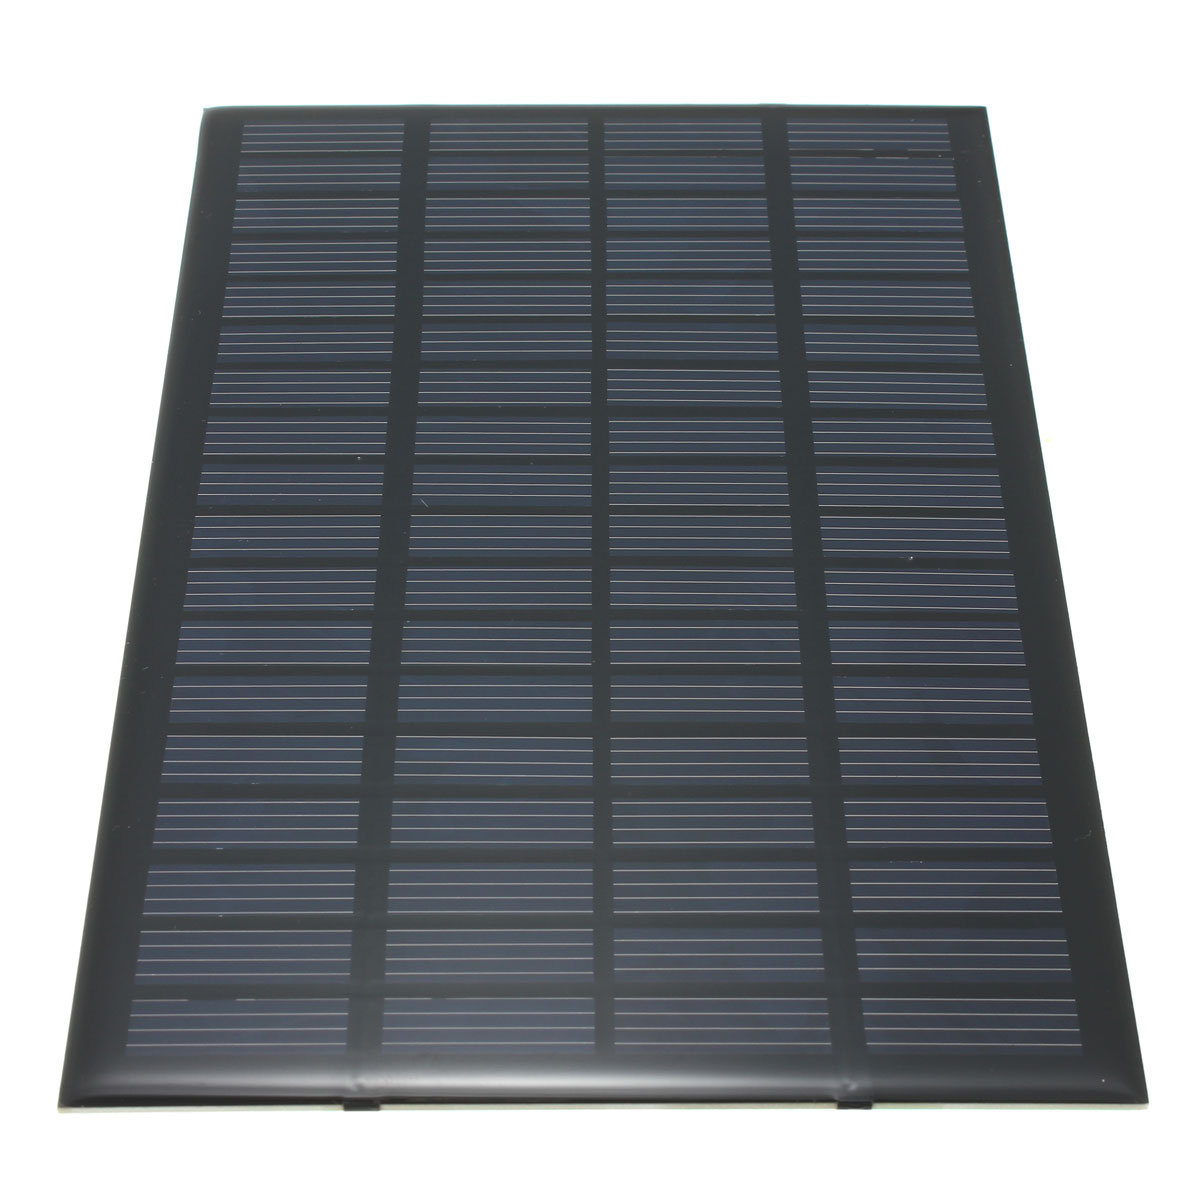 19.4x12x0.3cm High quality 18V 2.5W universal Polycrystalline Stored Energy Power Solar Panel Module System Solar Cells Charger(China (Mainland))